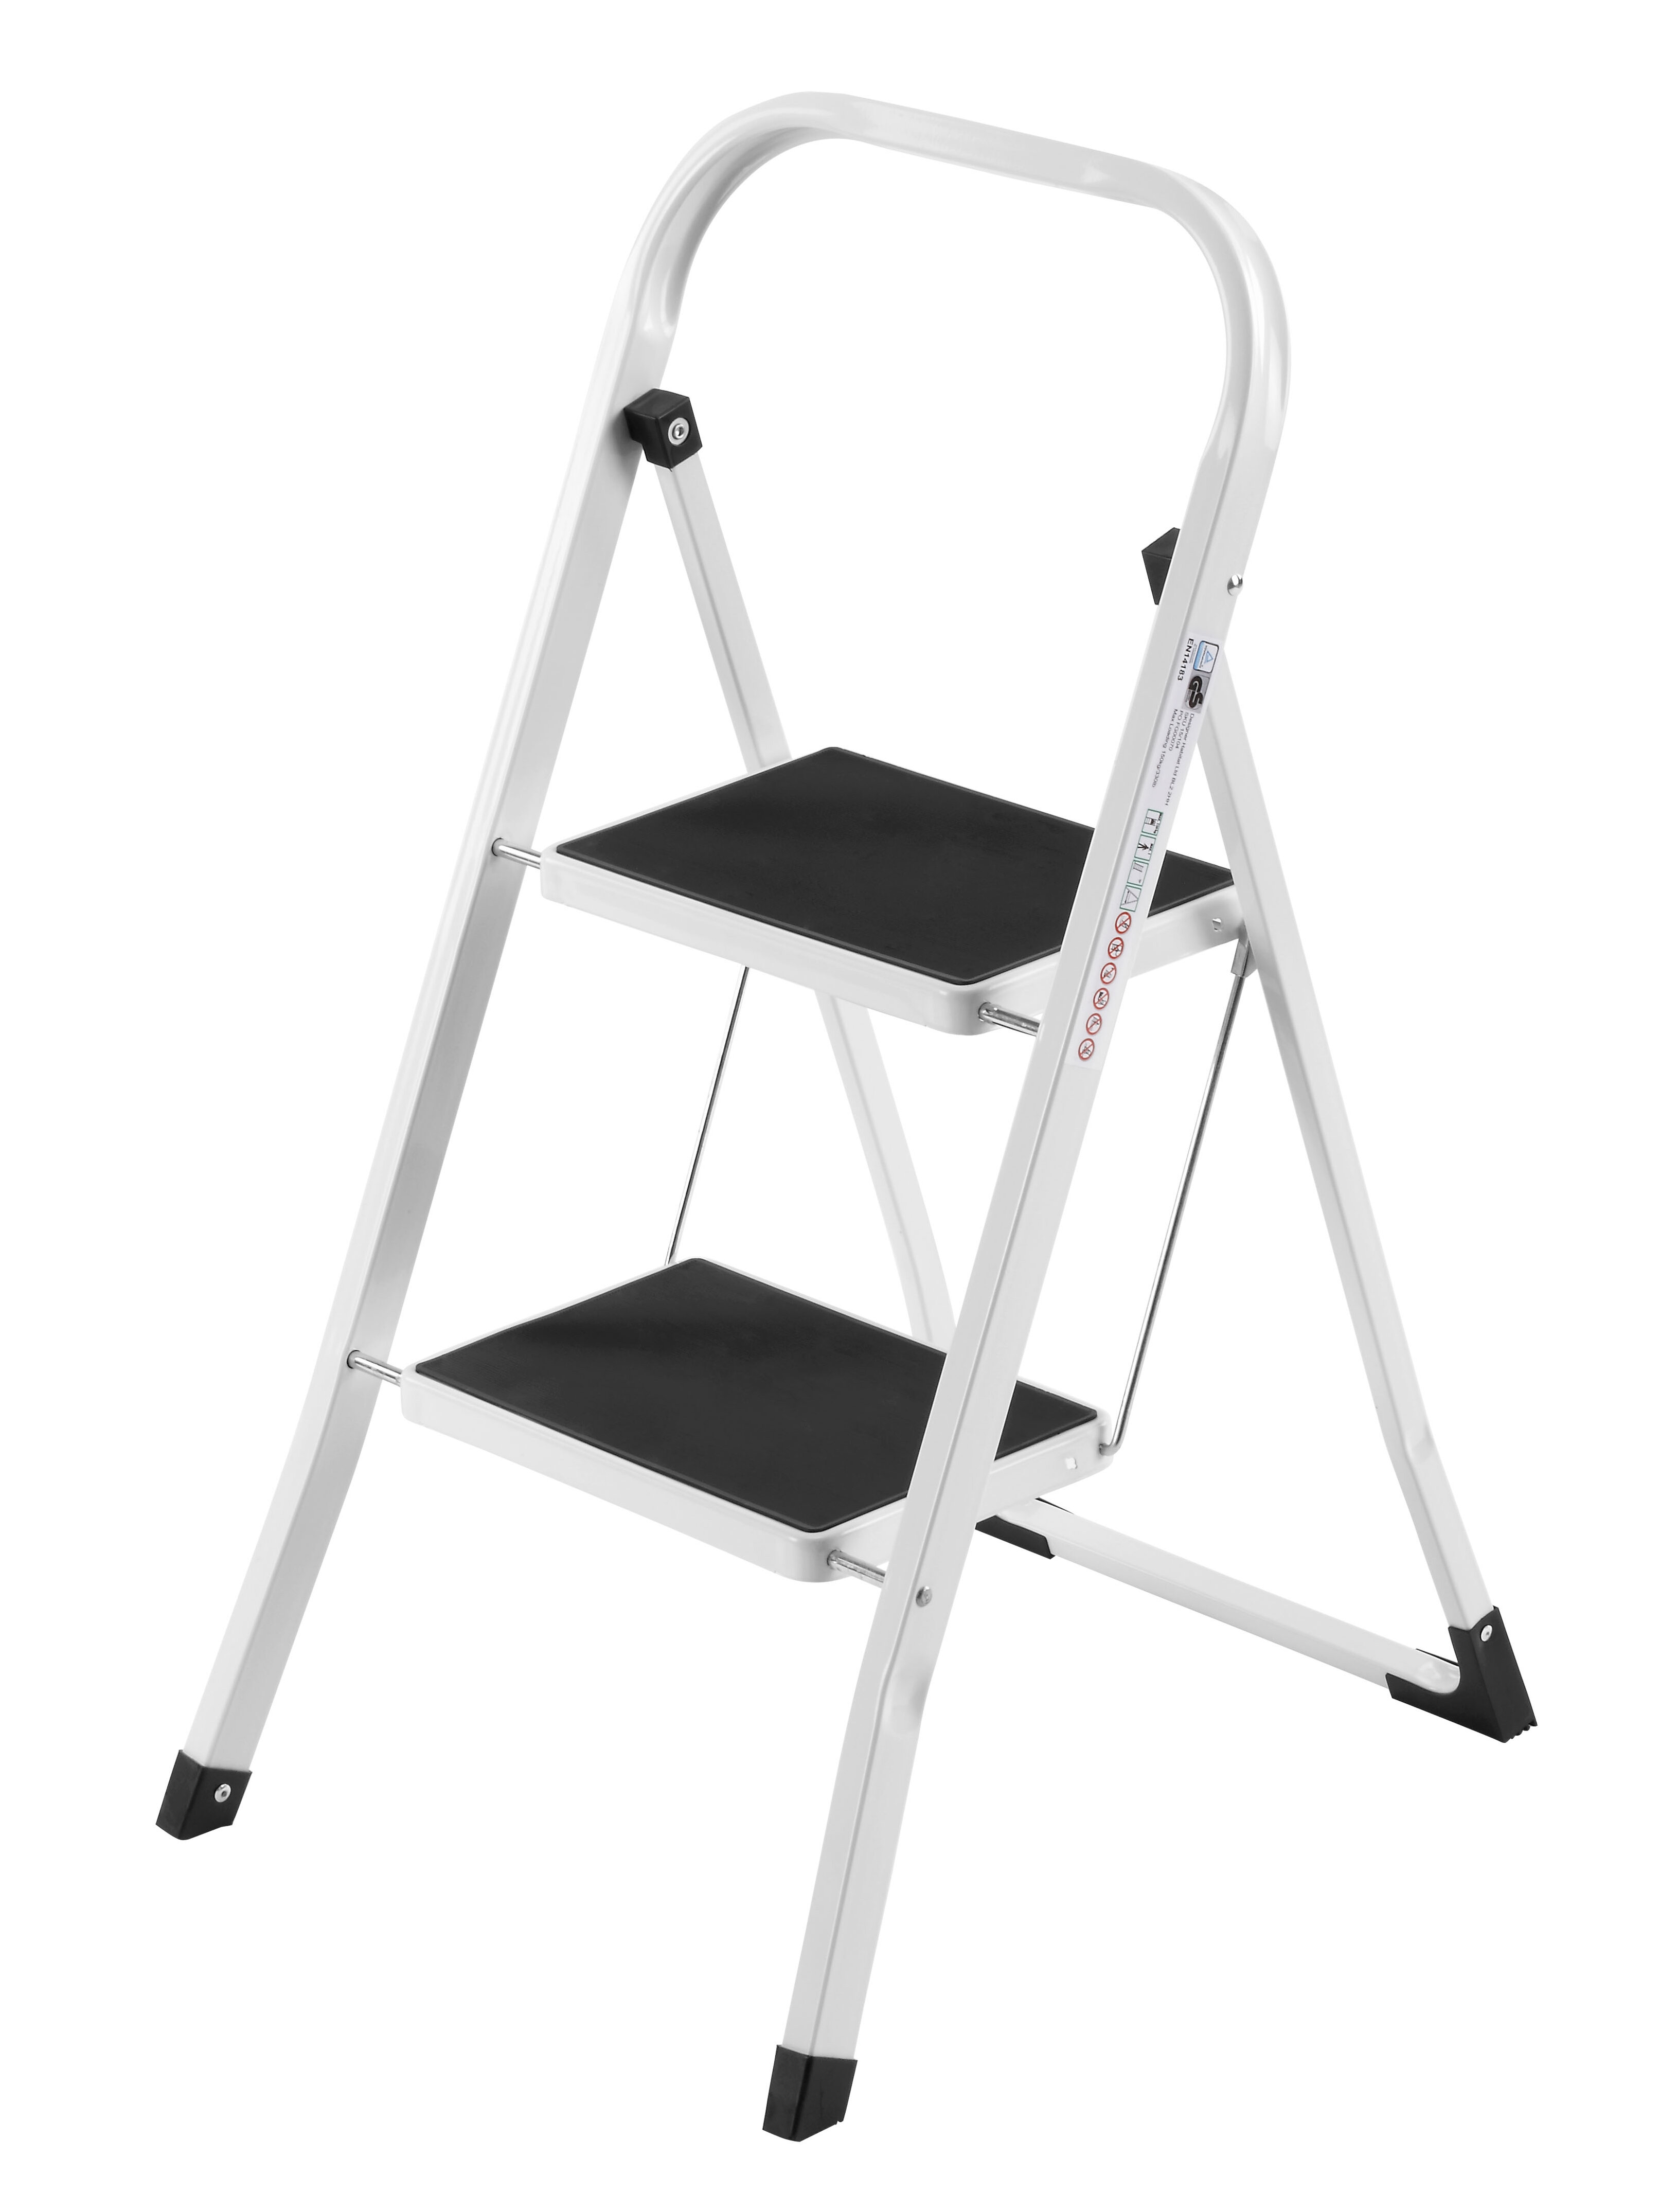 Tremendous 2 Step Steel Step Stool With 330 Lb Load Capacity Gmtry Best Dining Table And Chair Ideas Images Gmtryco